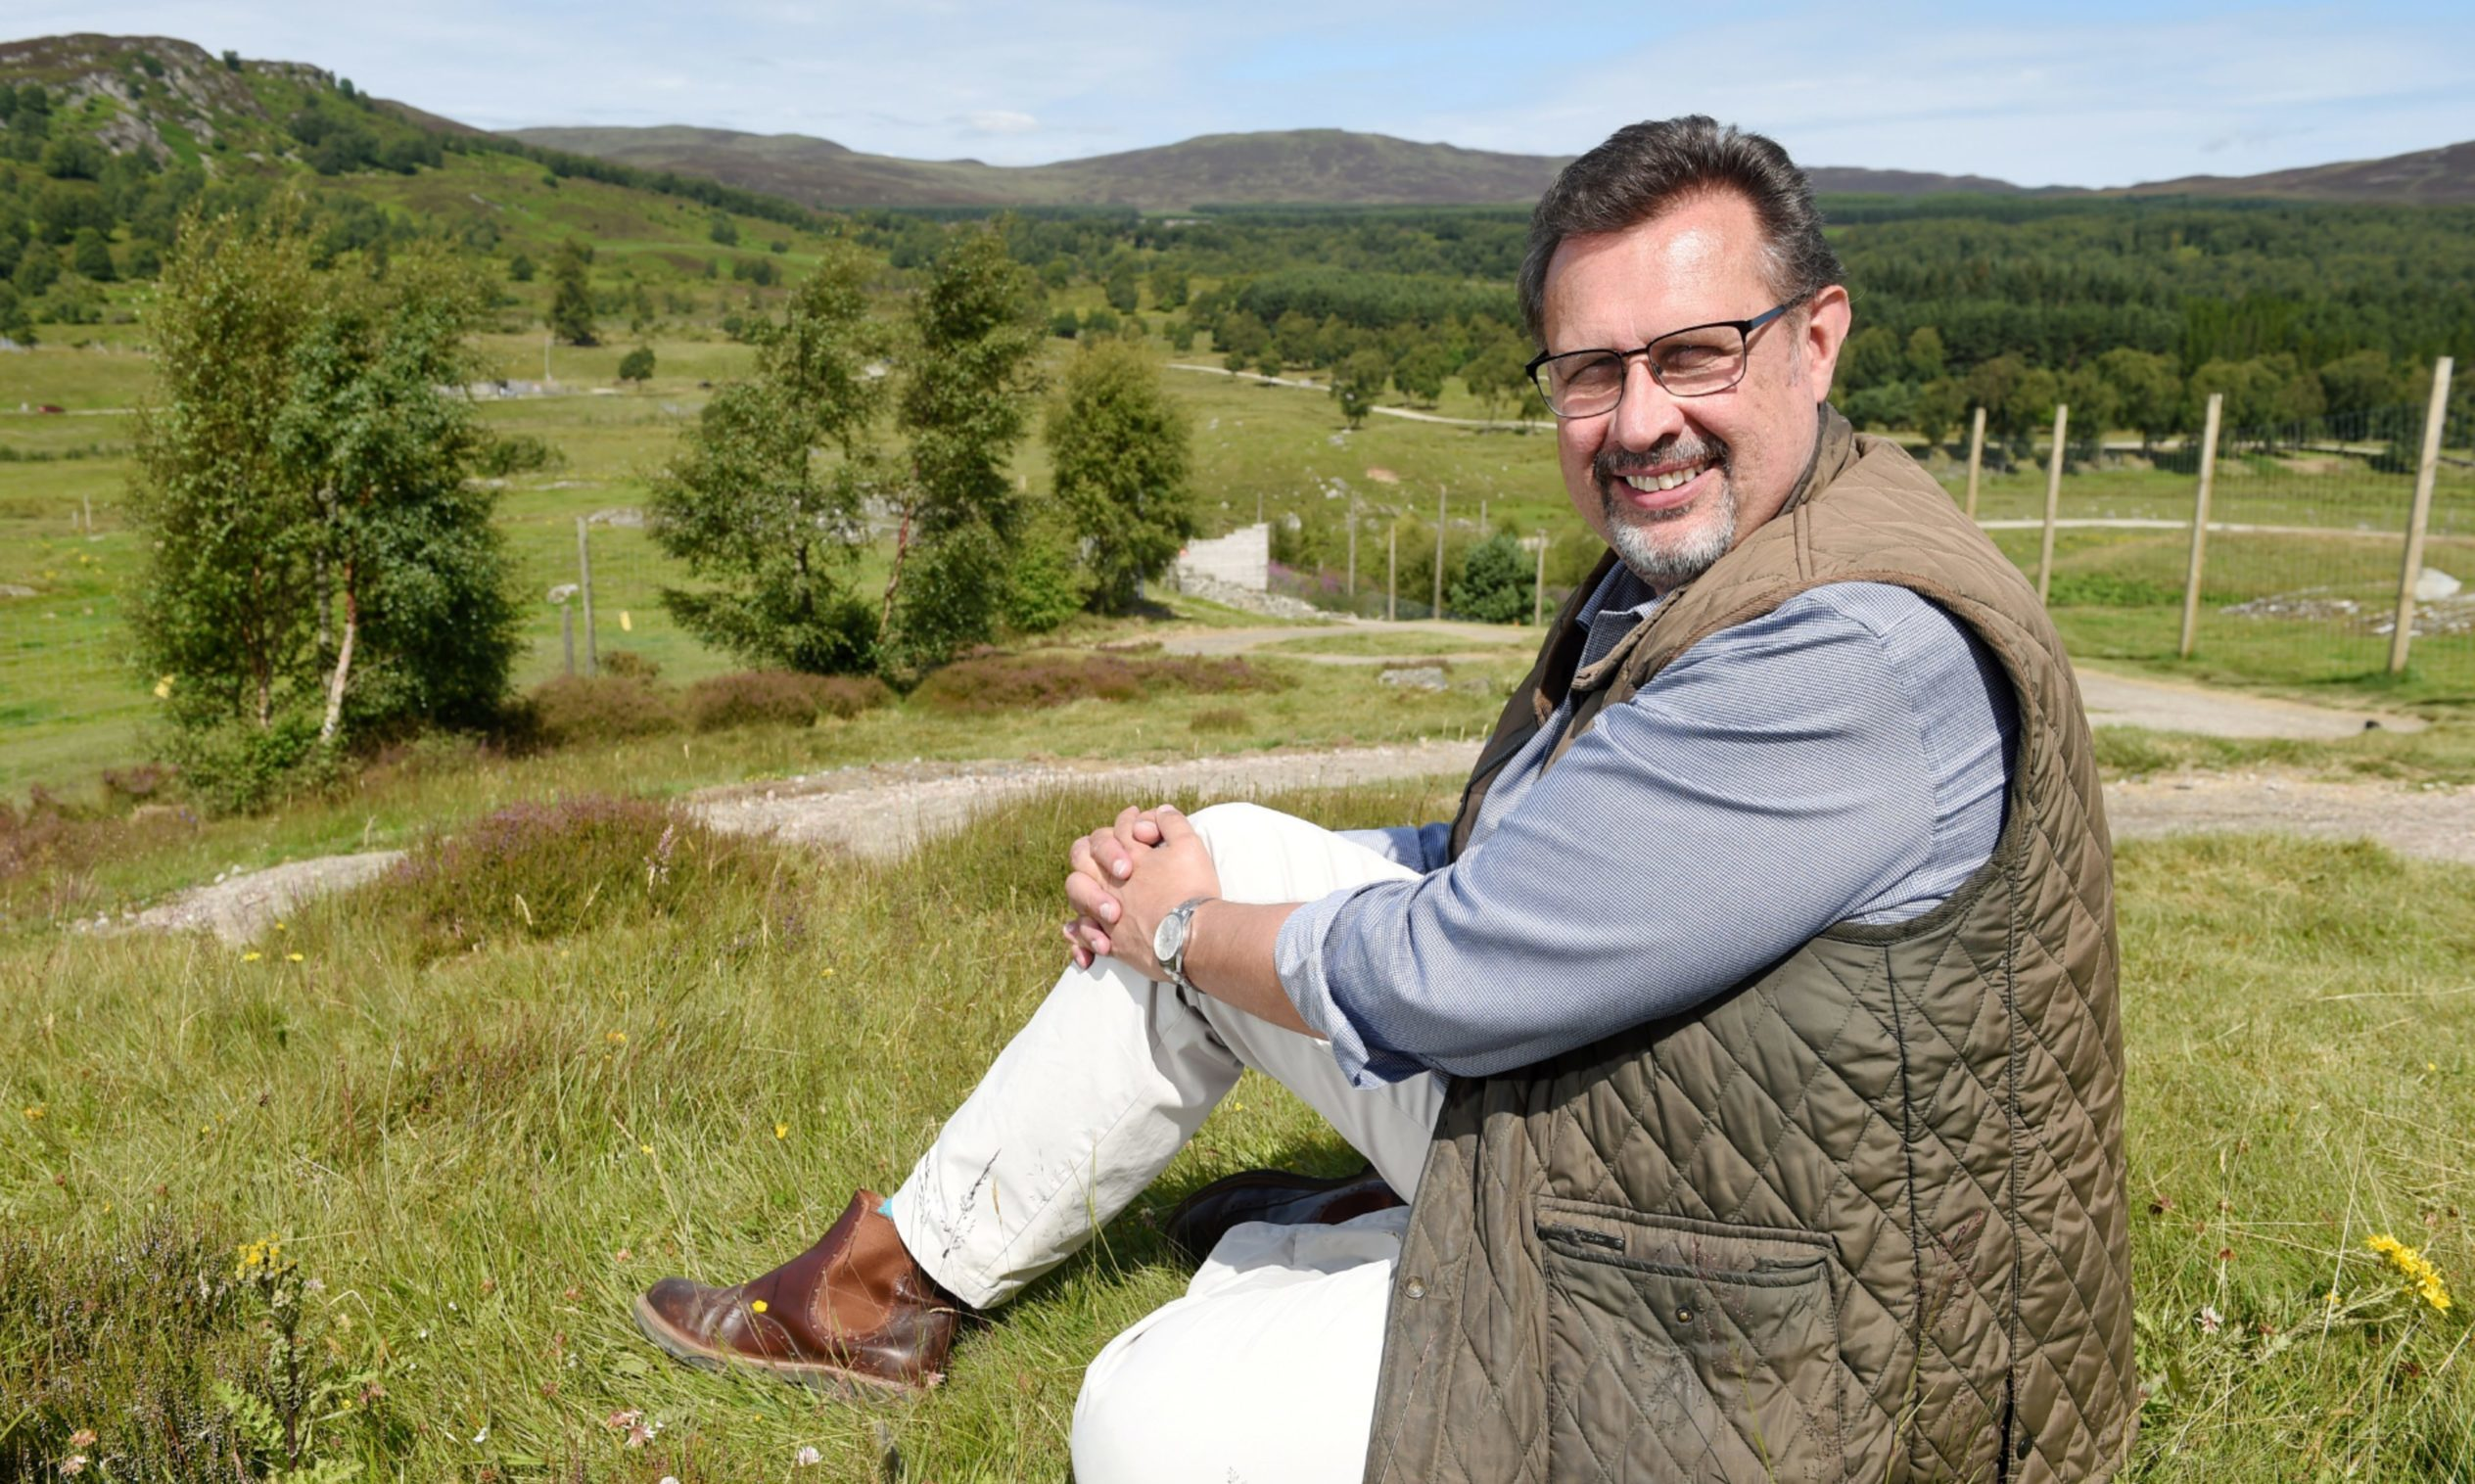 'Once in a lifetime' offer will help fund new wildlife centre in Cairngorms